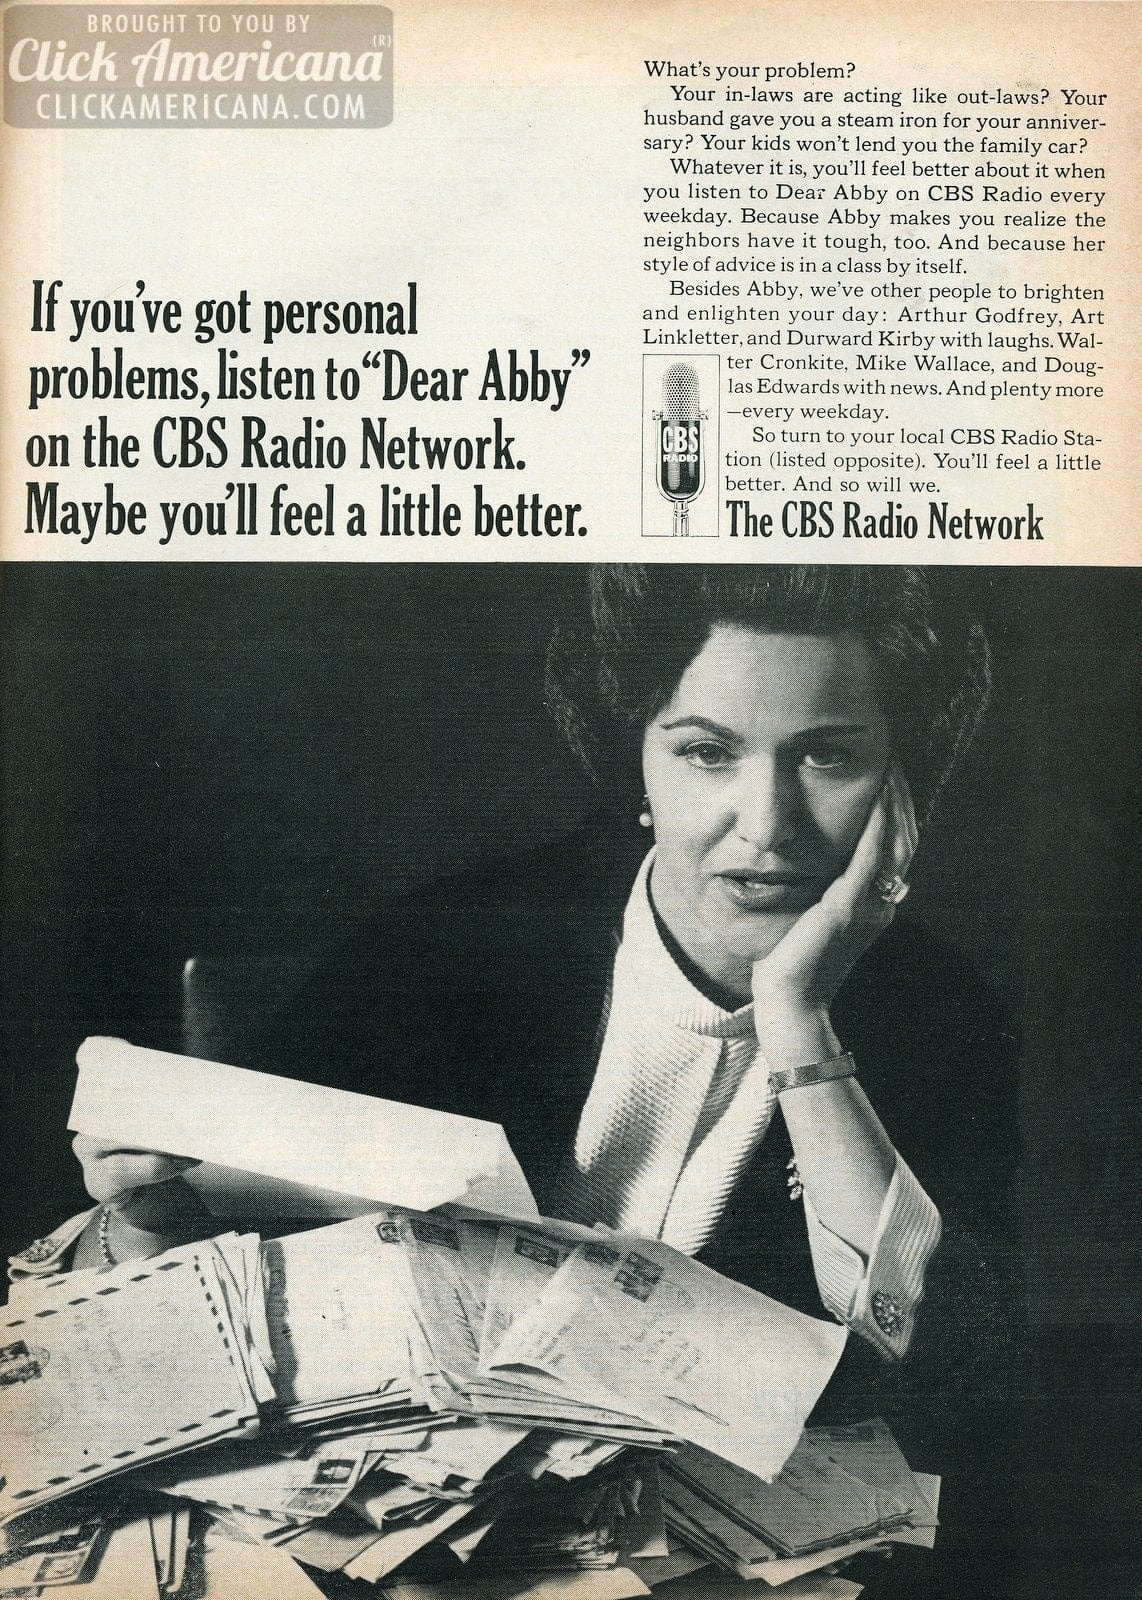 News, advice, comedy & more on the CBS Radio Network (1960s) - Click